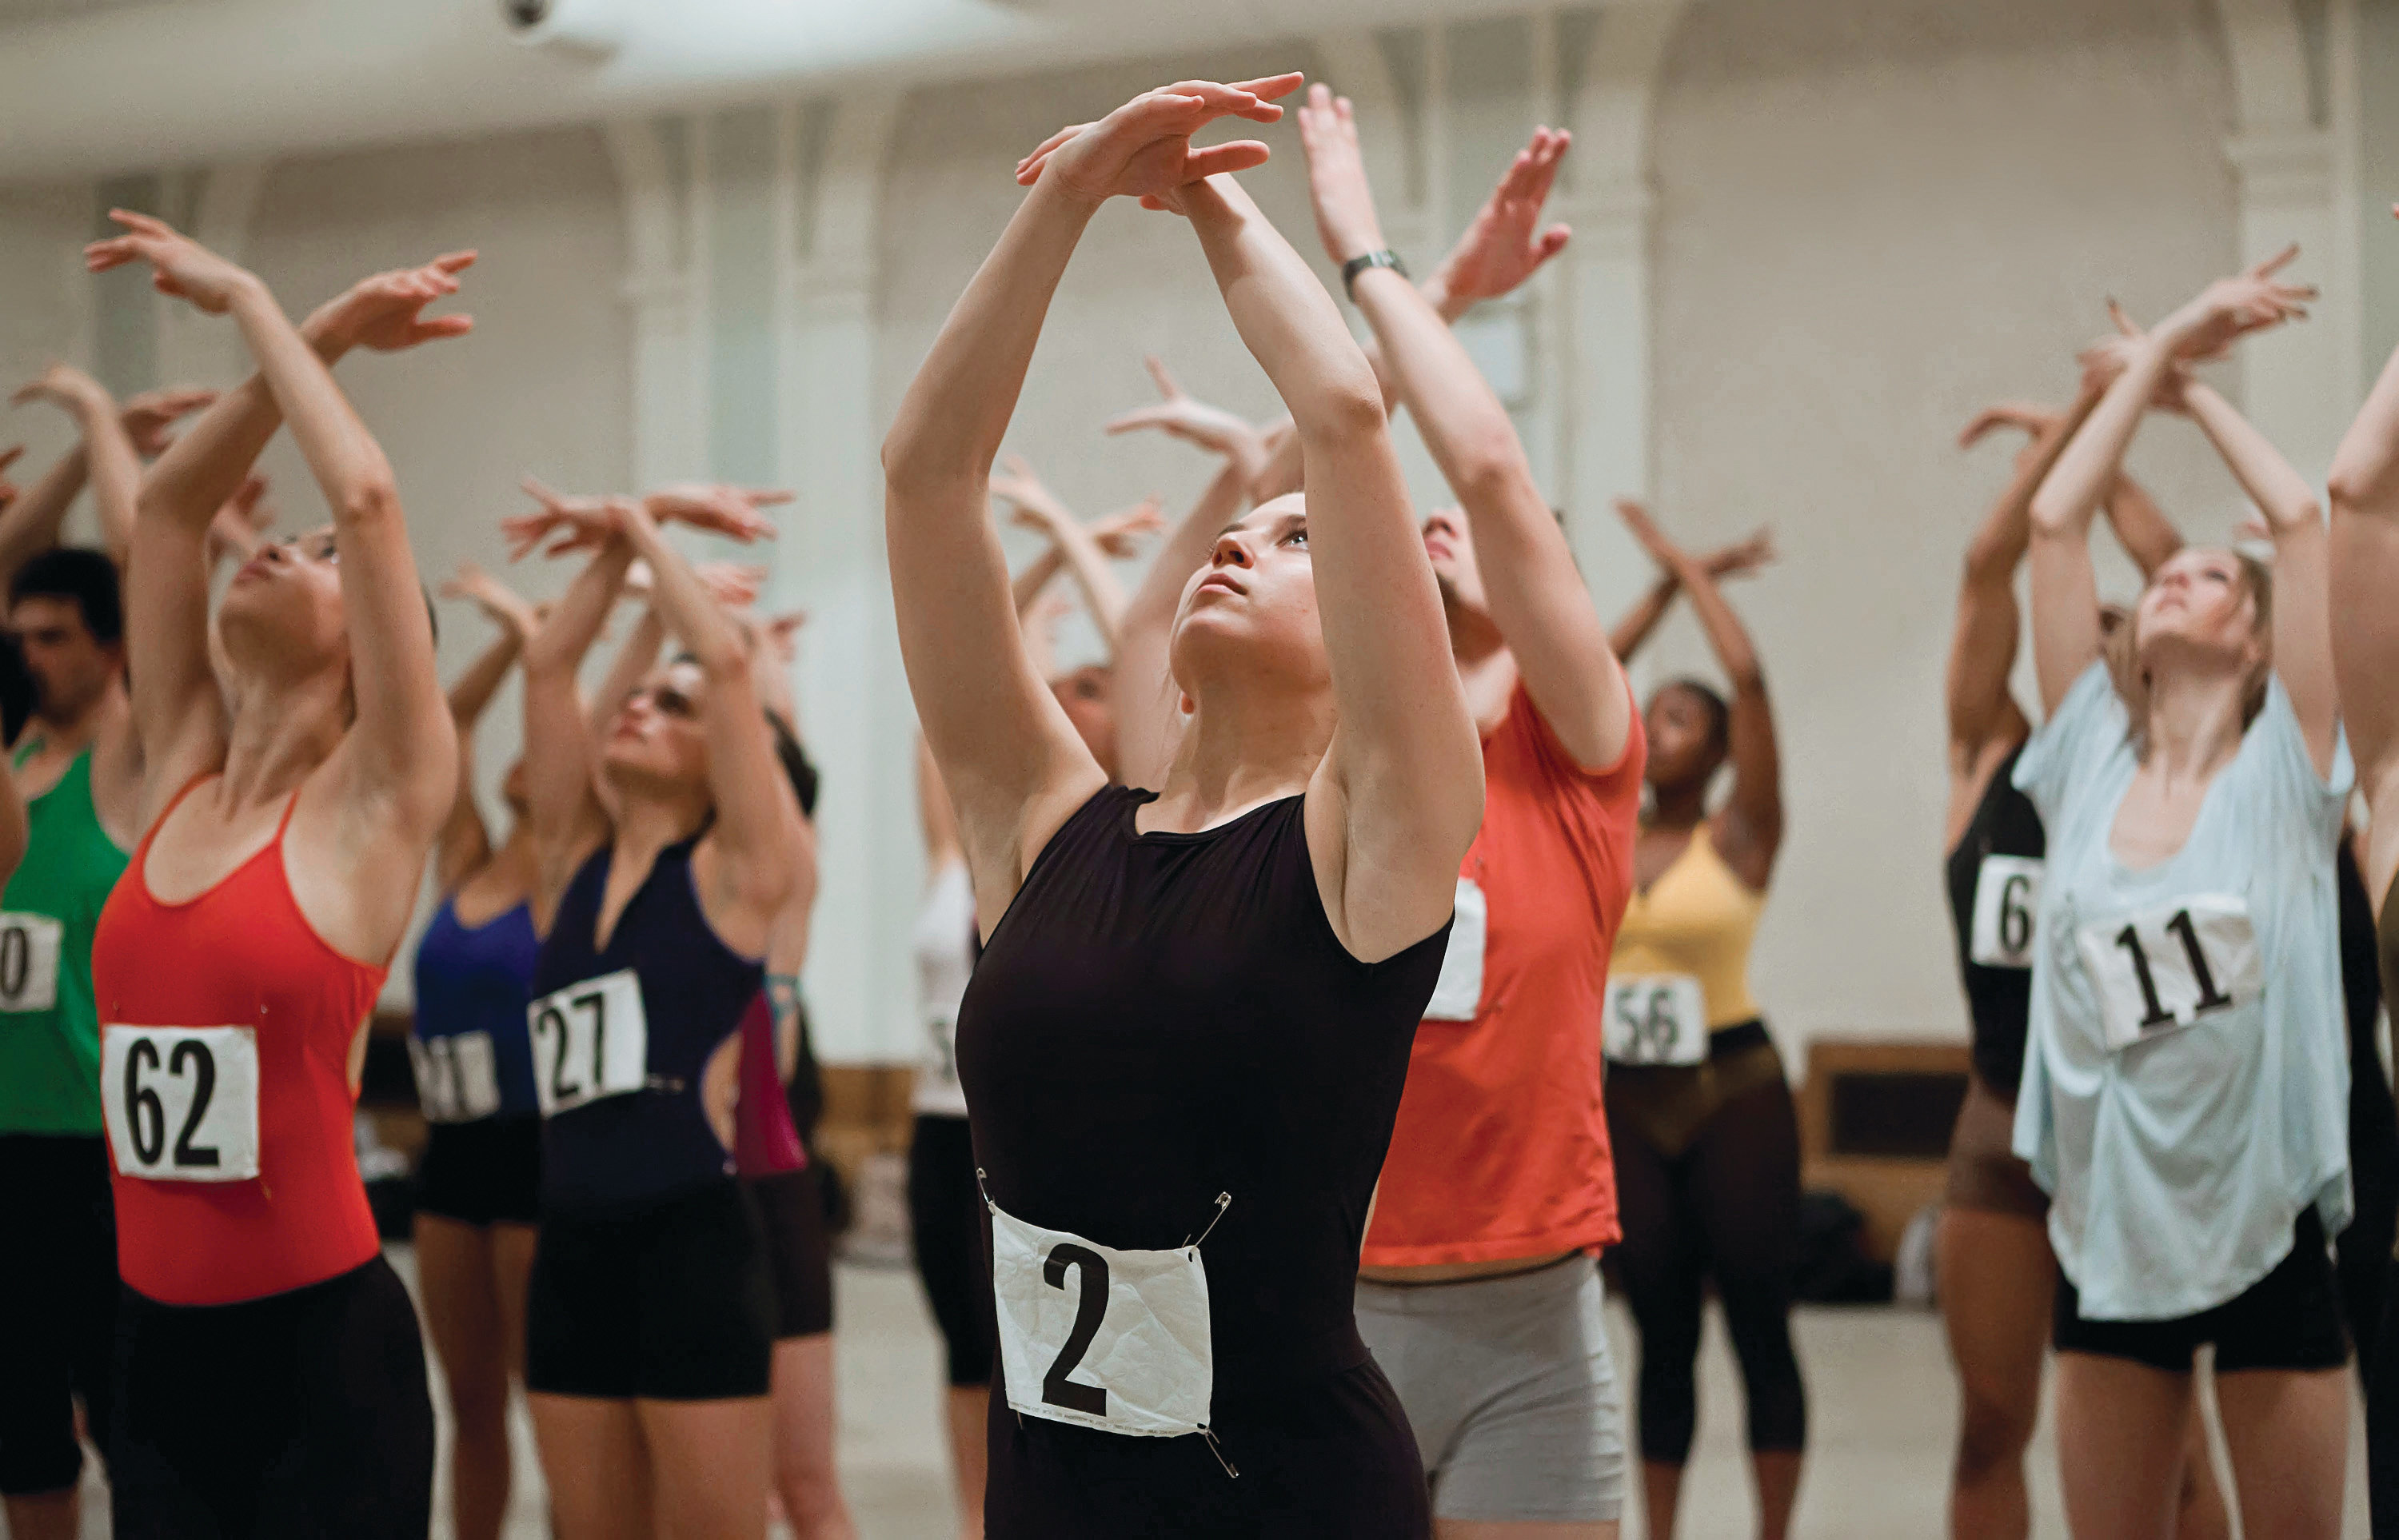 4 Summer Intensive Directors on How to Stand Out at